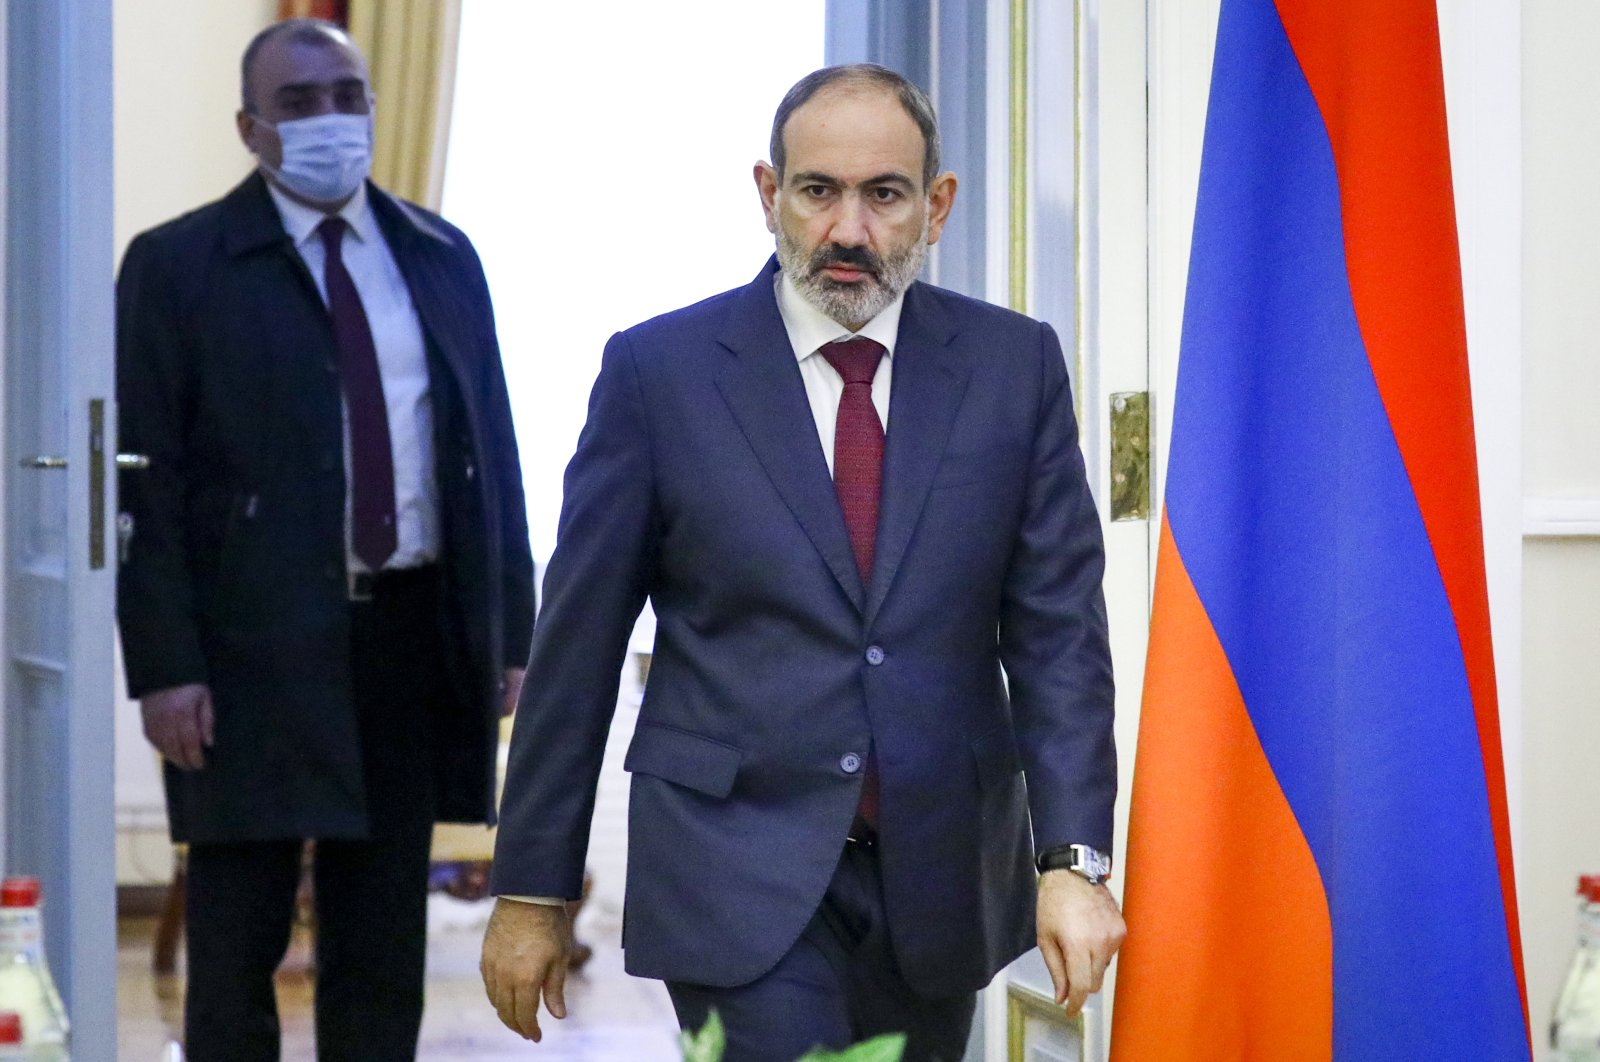 Armenia's Prime Minister Nikol Pashinian enters a hall for a meeting with Russian Foreign Minister Sergey Lavrov in Yerevan, Armenia, Nov. 21, 2020. (Russian Foreign Ministry Press Service via AP)